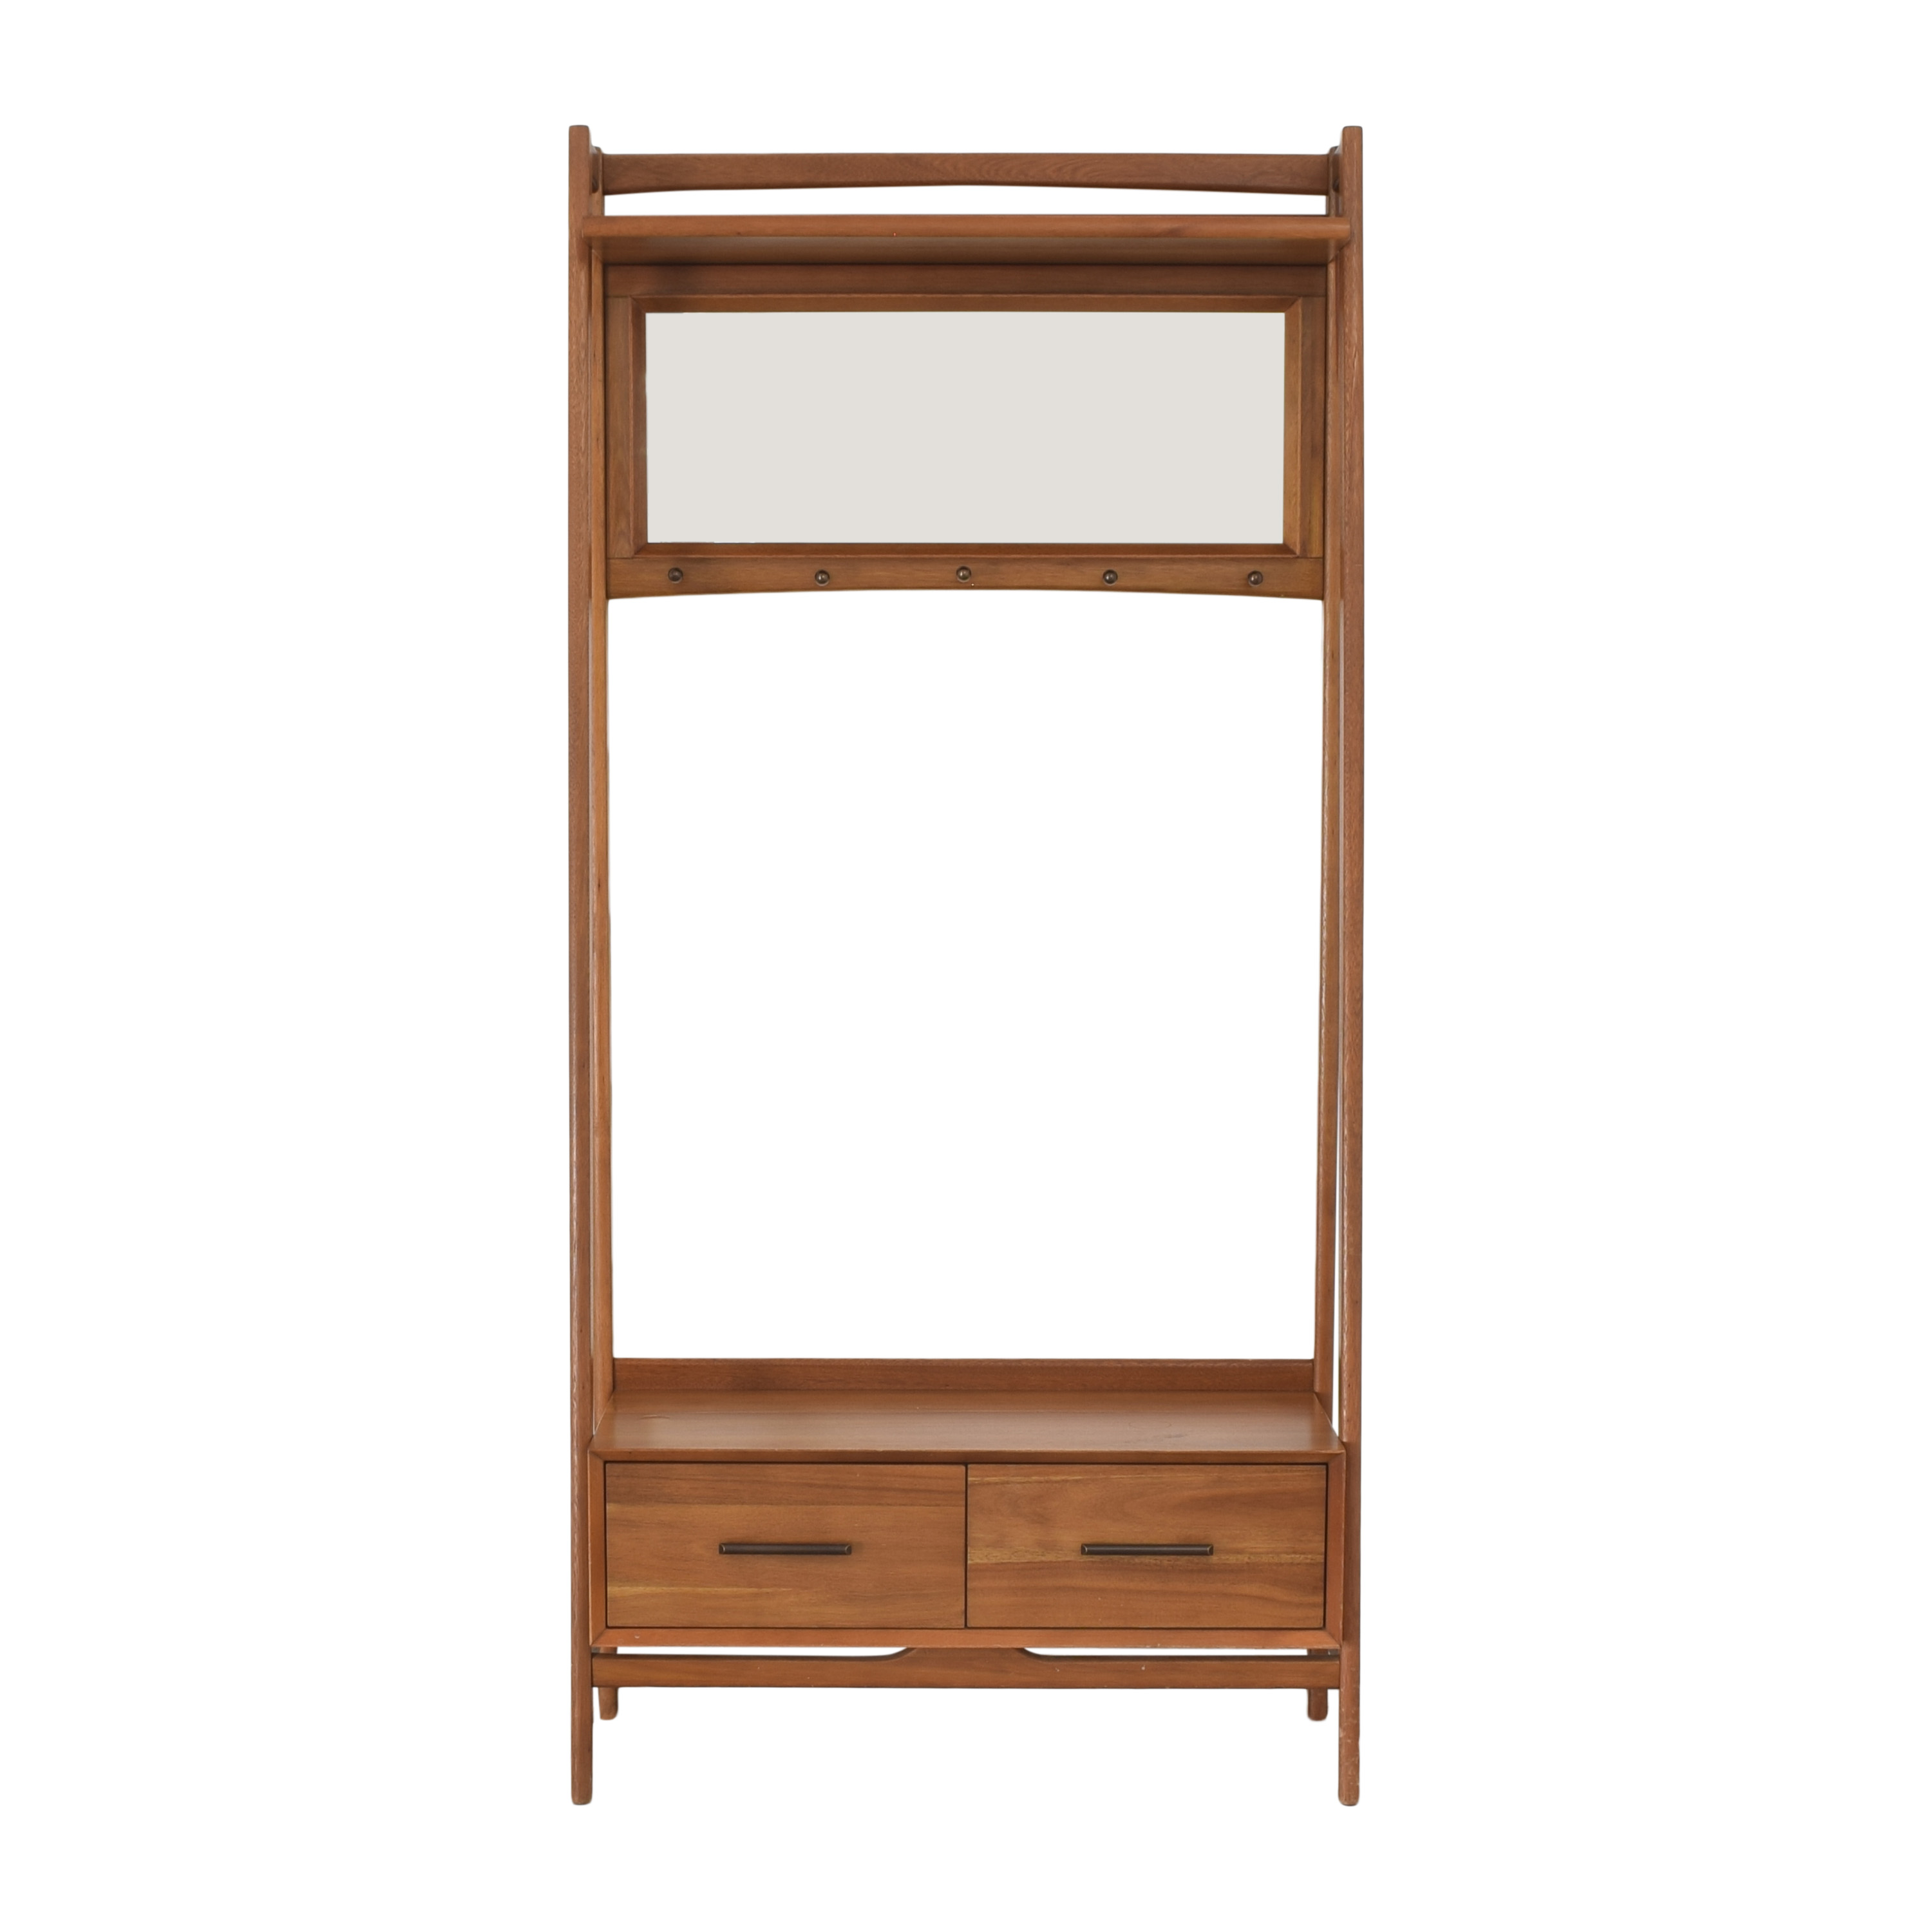 West Elm West Elm Mid-Century Hall Stand Entryway Bench brown